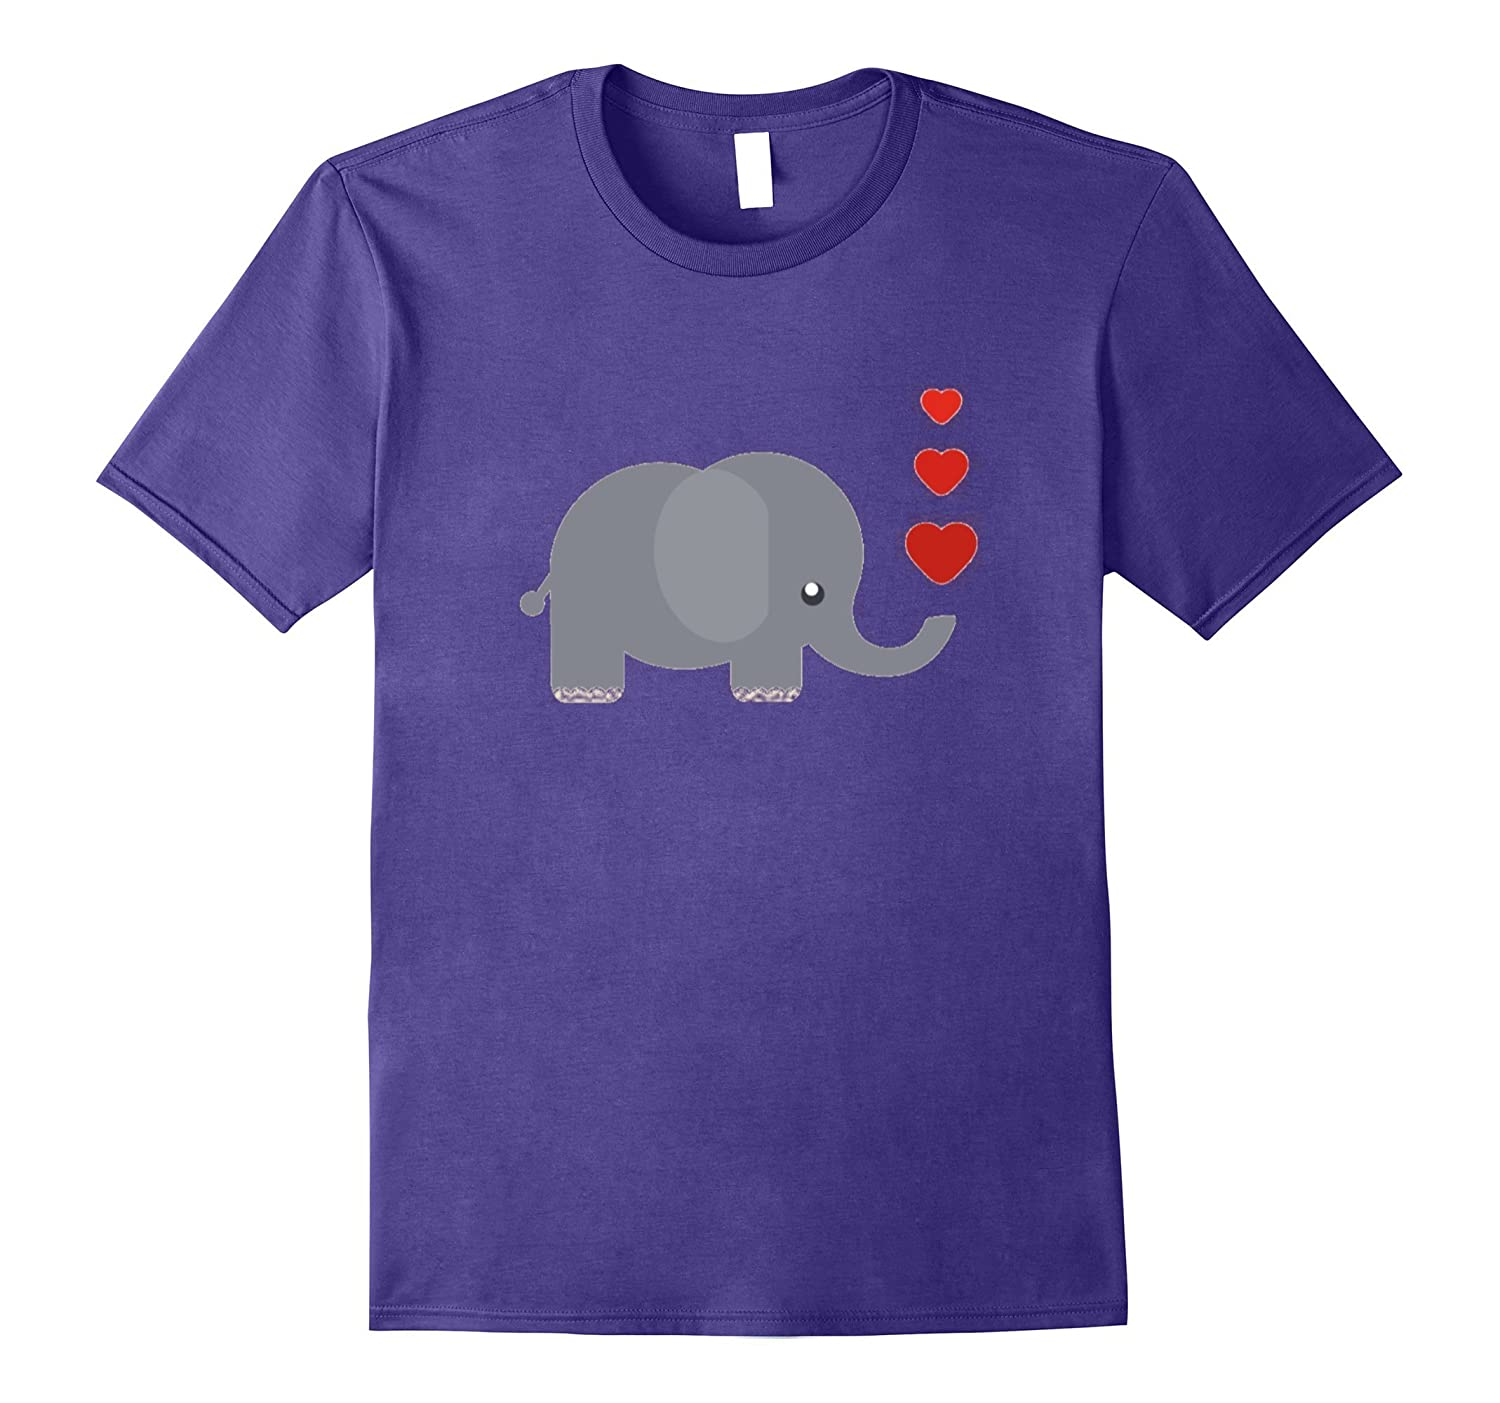 754d38116 Baby Elephant T-Shirt Elephant Tee for Guys Girls Kids-PL – Polozatee